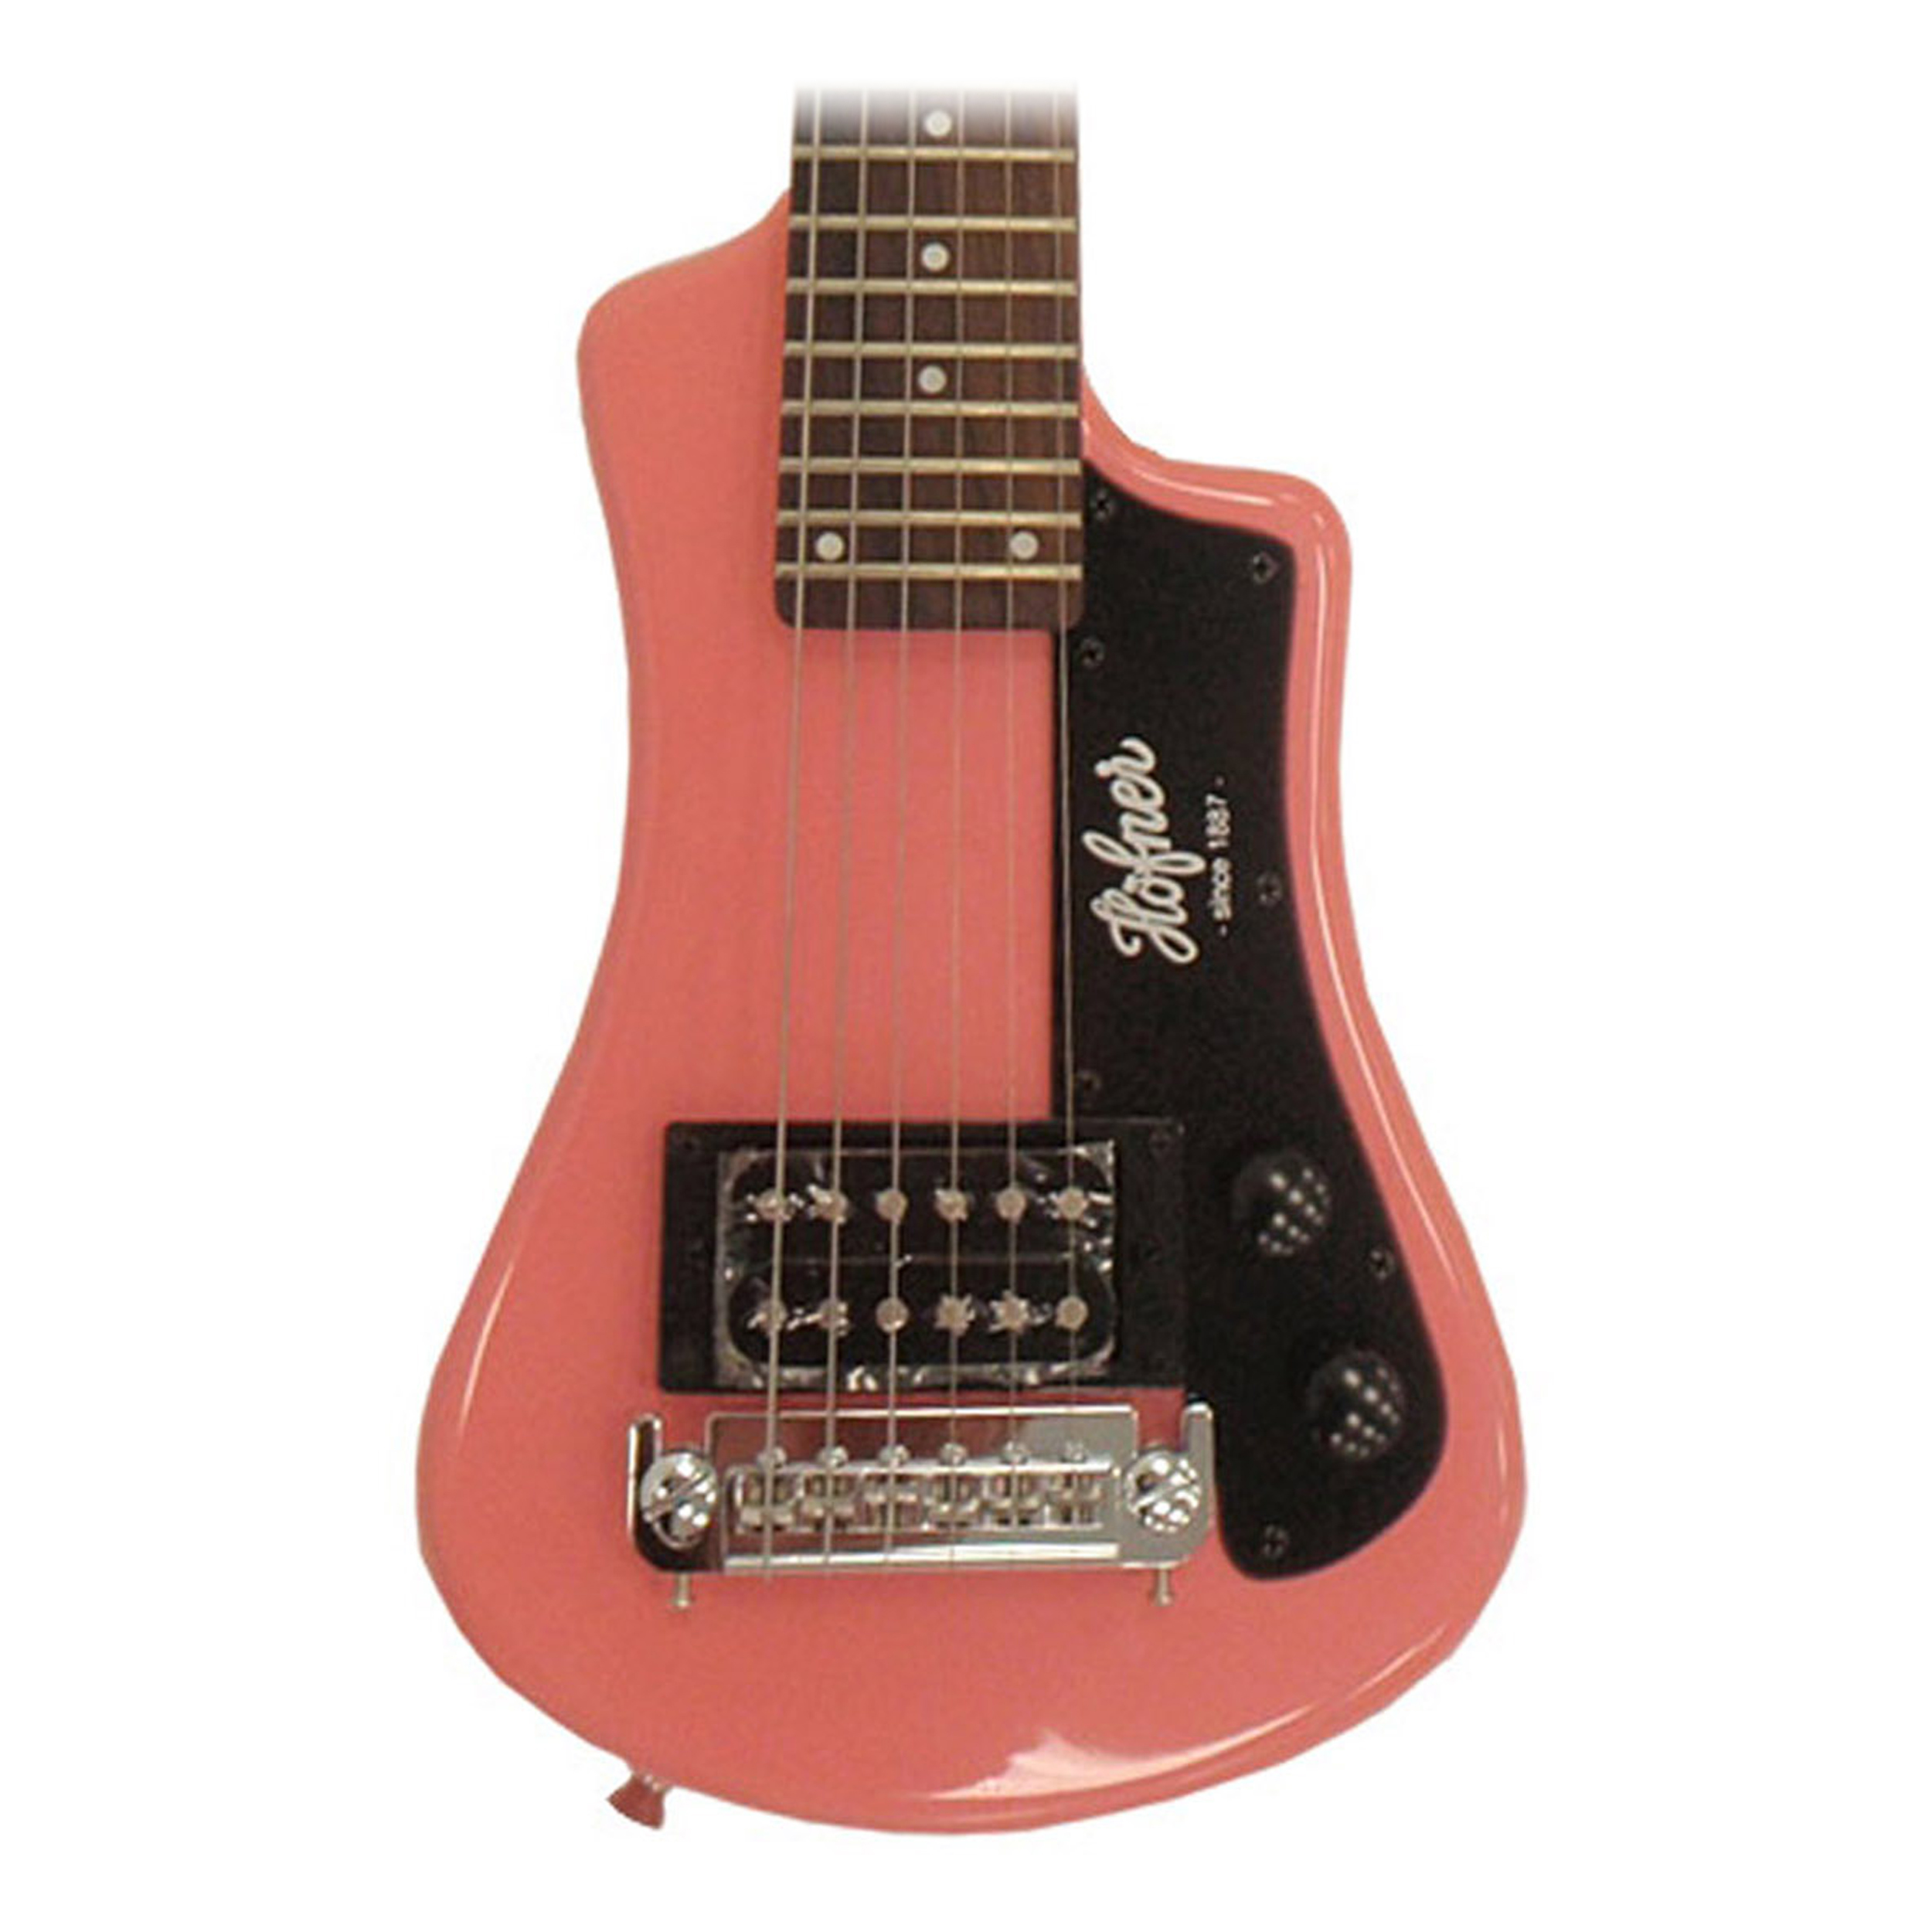 Hofner Shorty Electric Travel Guitar - Pink Blemished